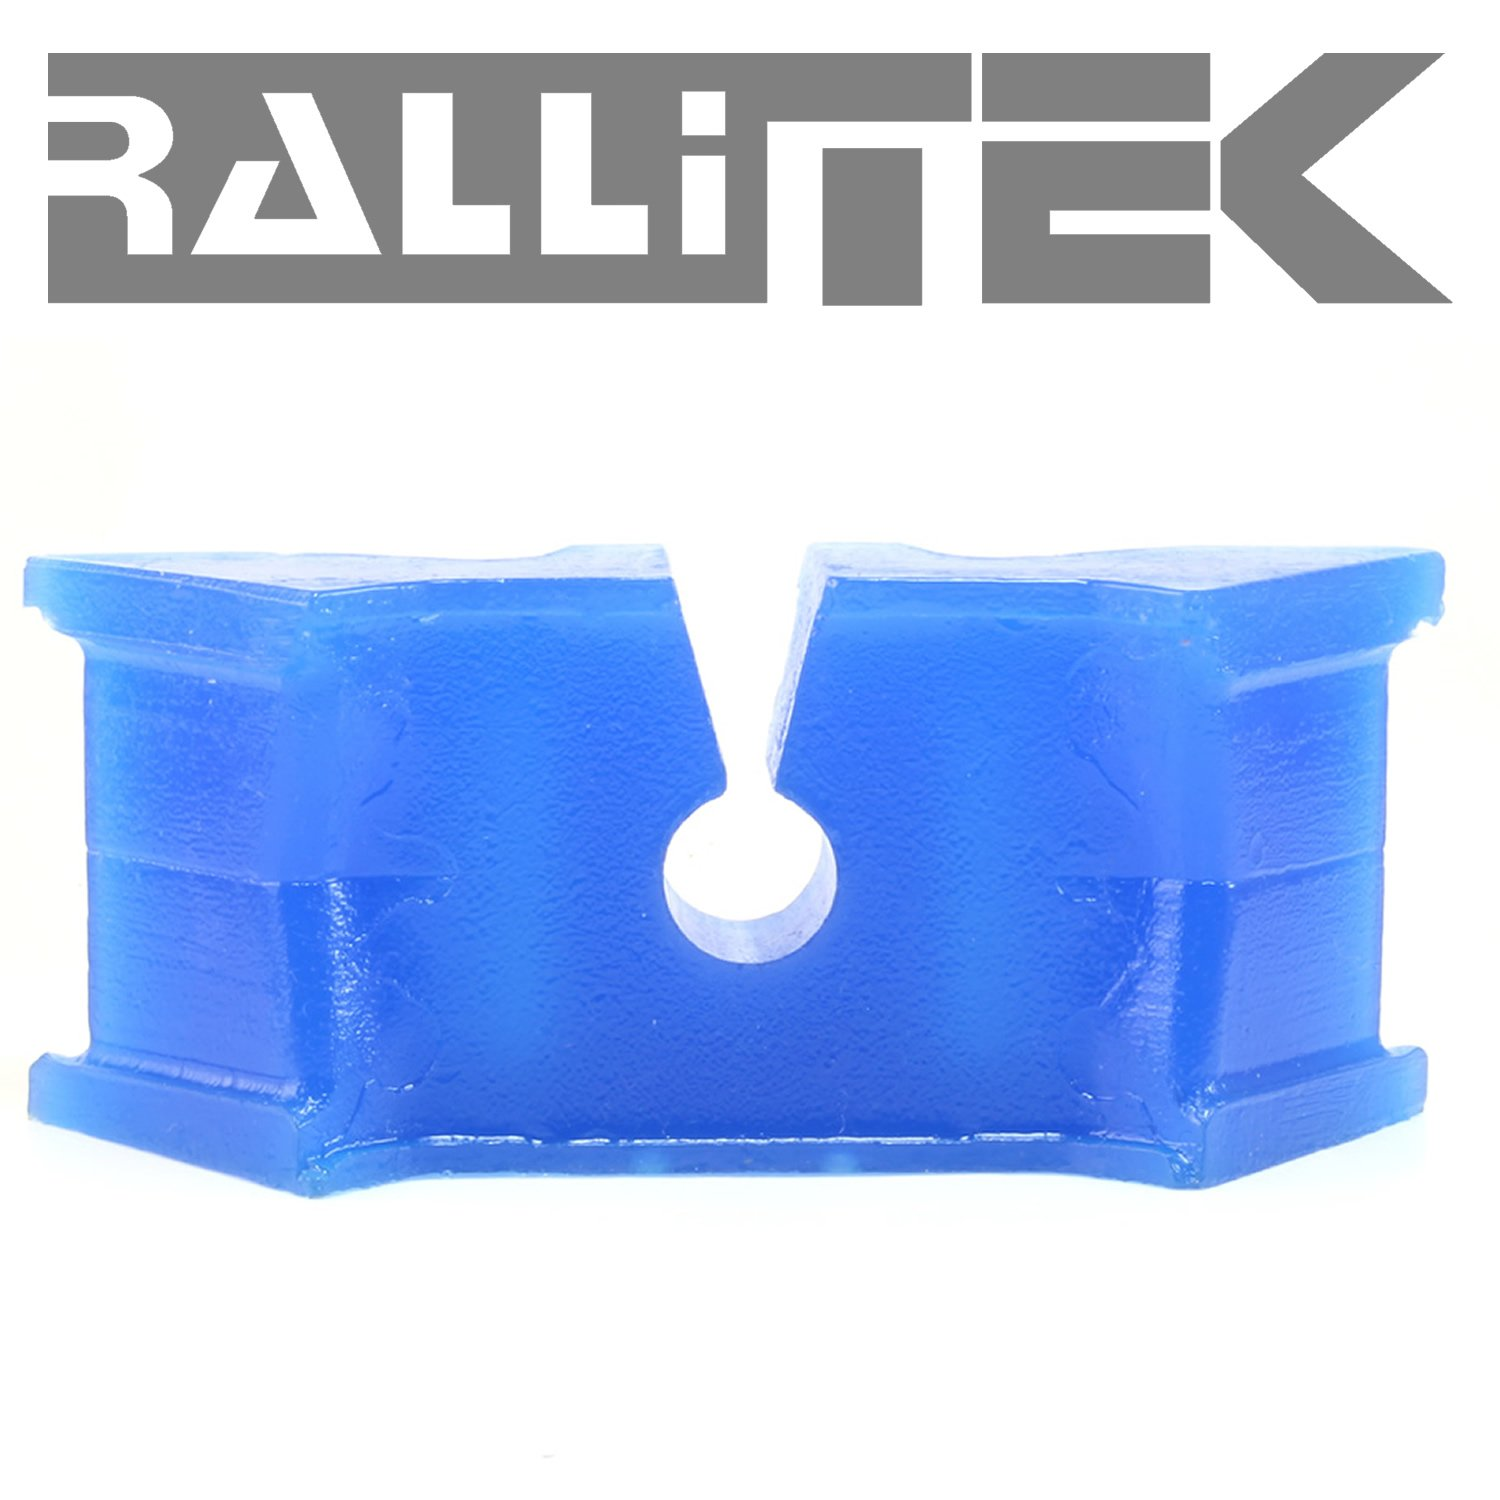 RalliTEK 4EAT Transmission Mount Insert Bushing SOFT RTEK-111672